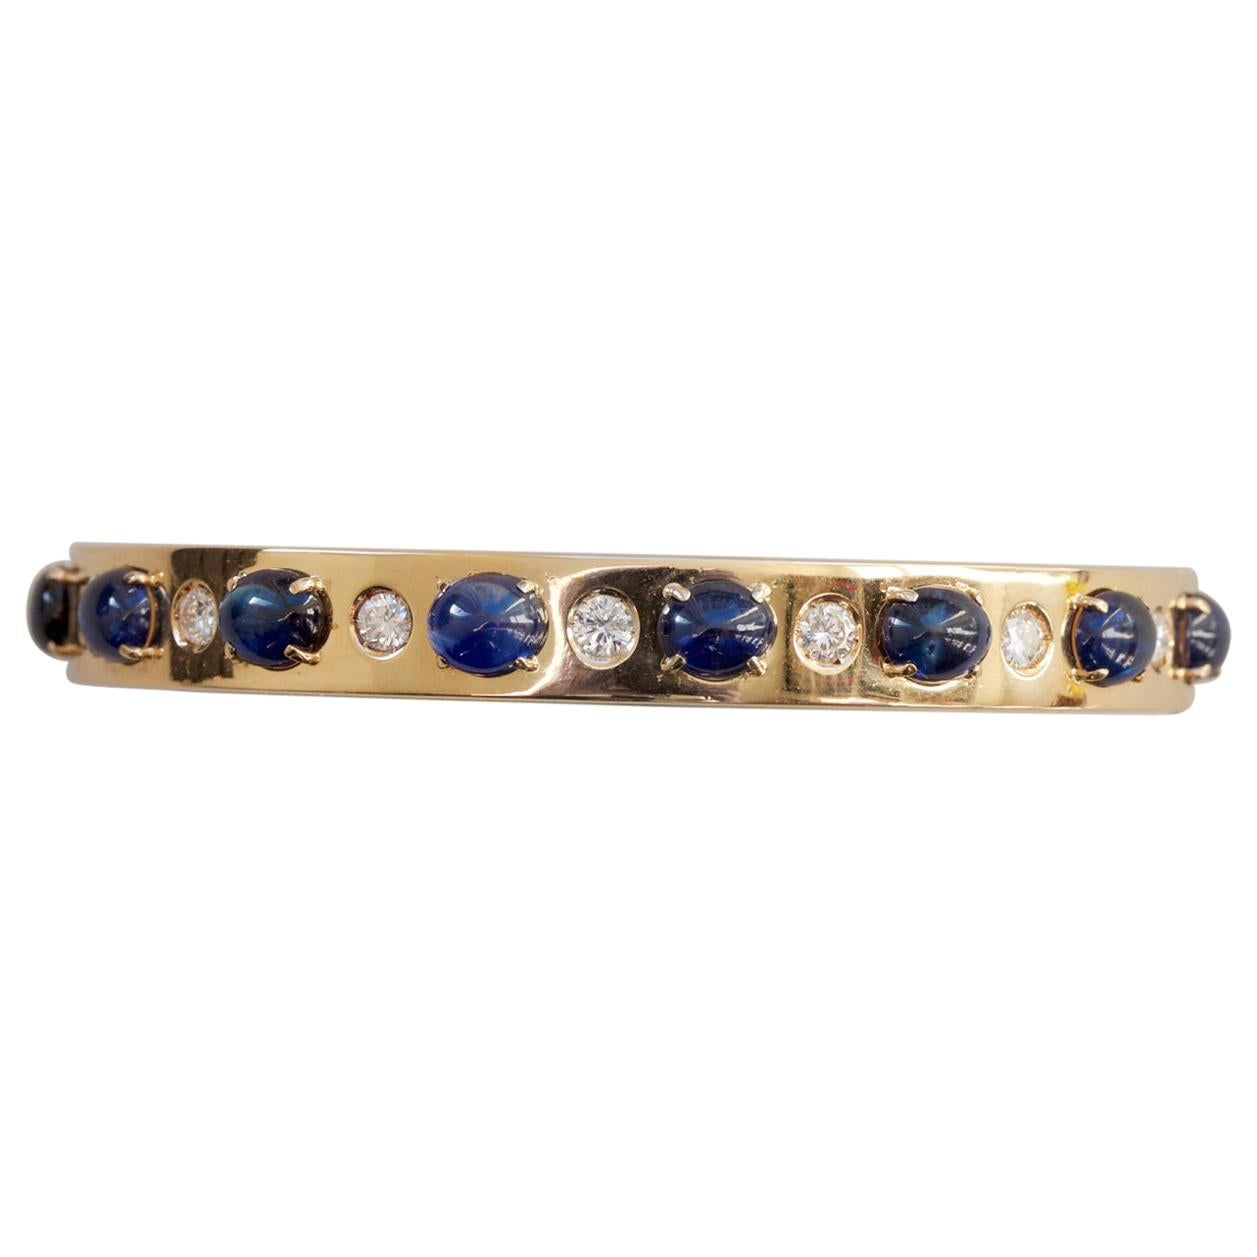 18 Carat Gold Bangle with Diamonds and Sapphires